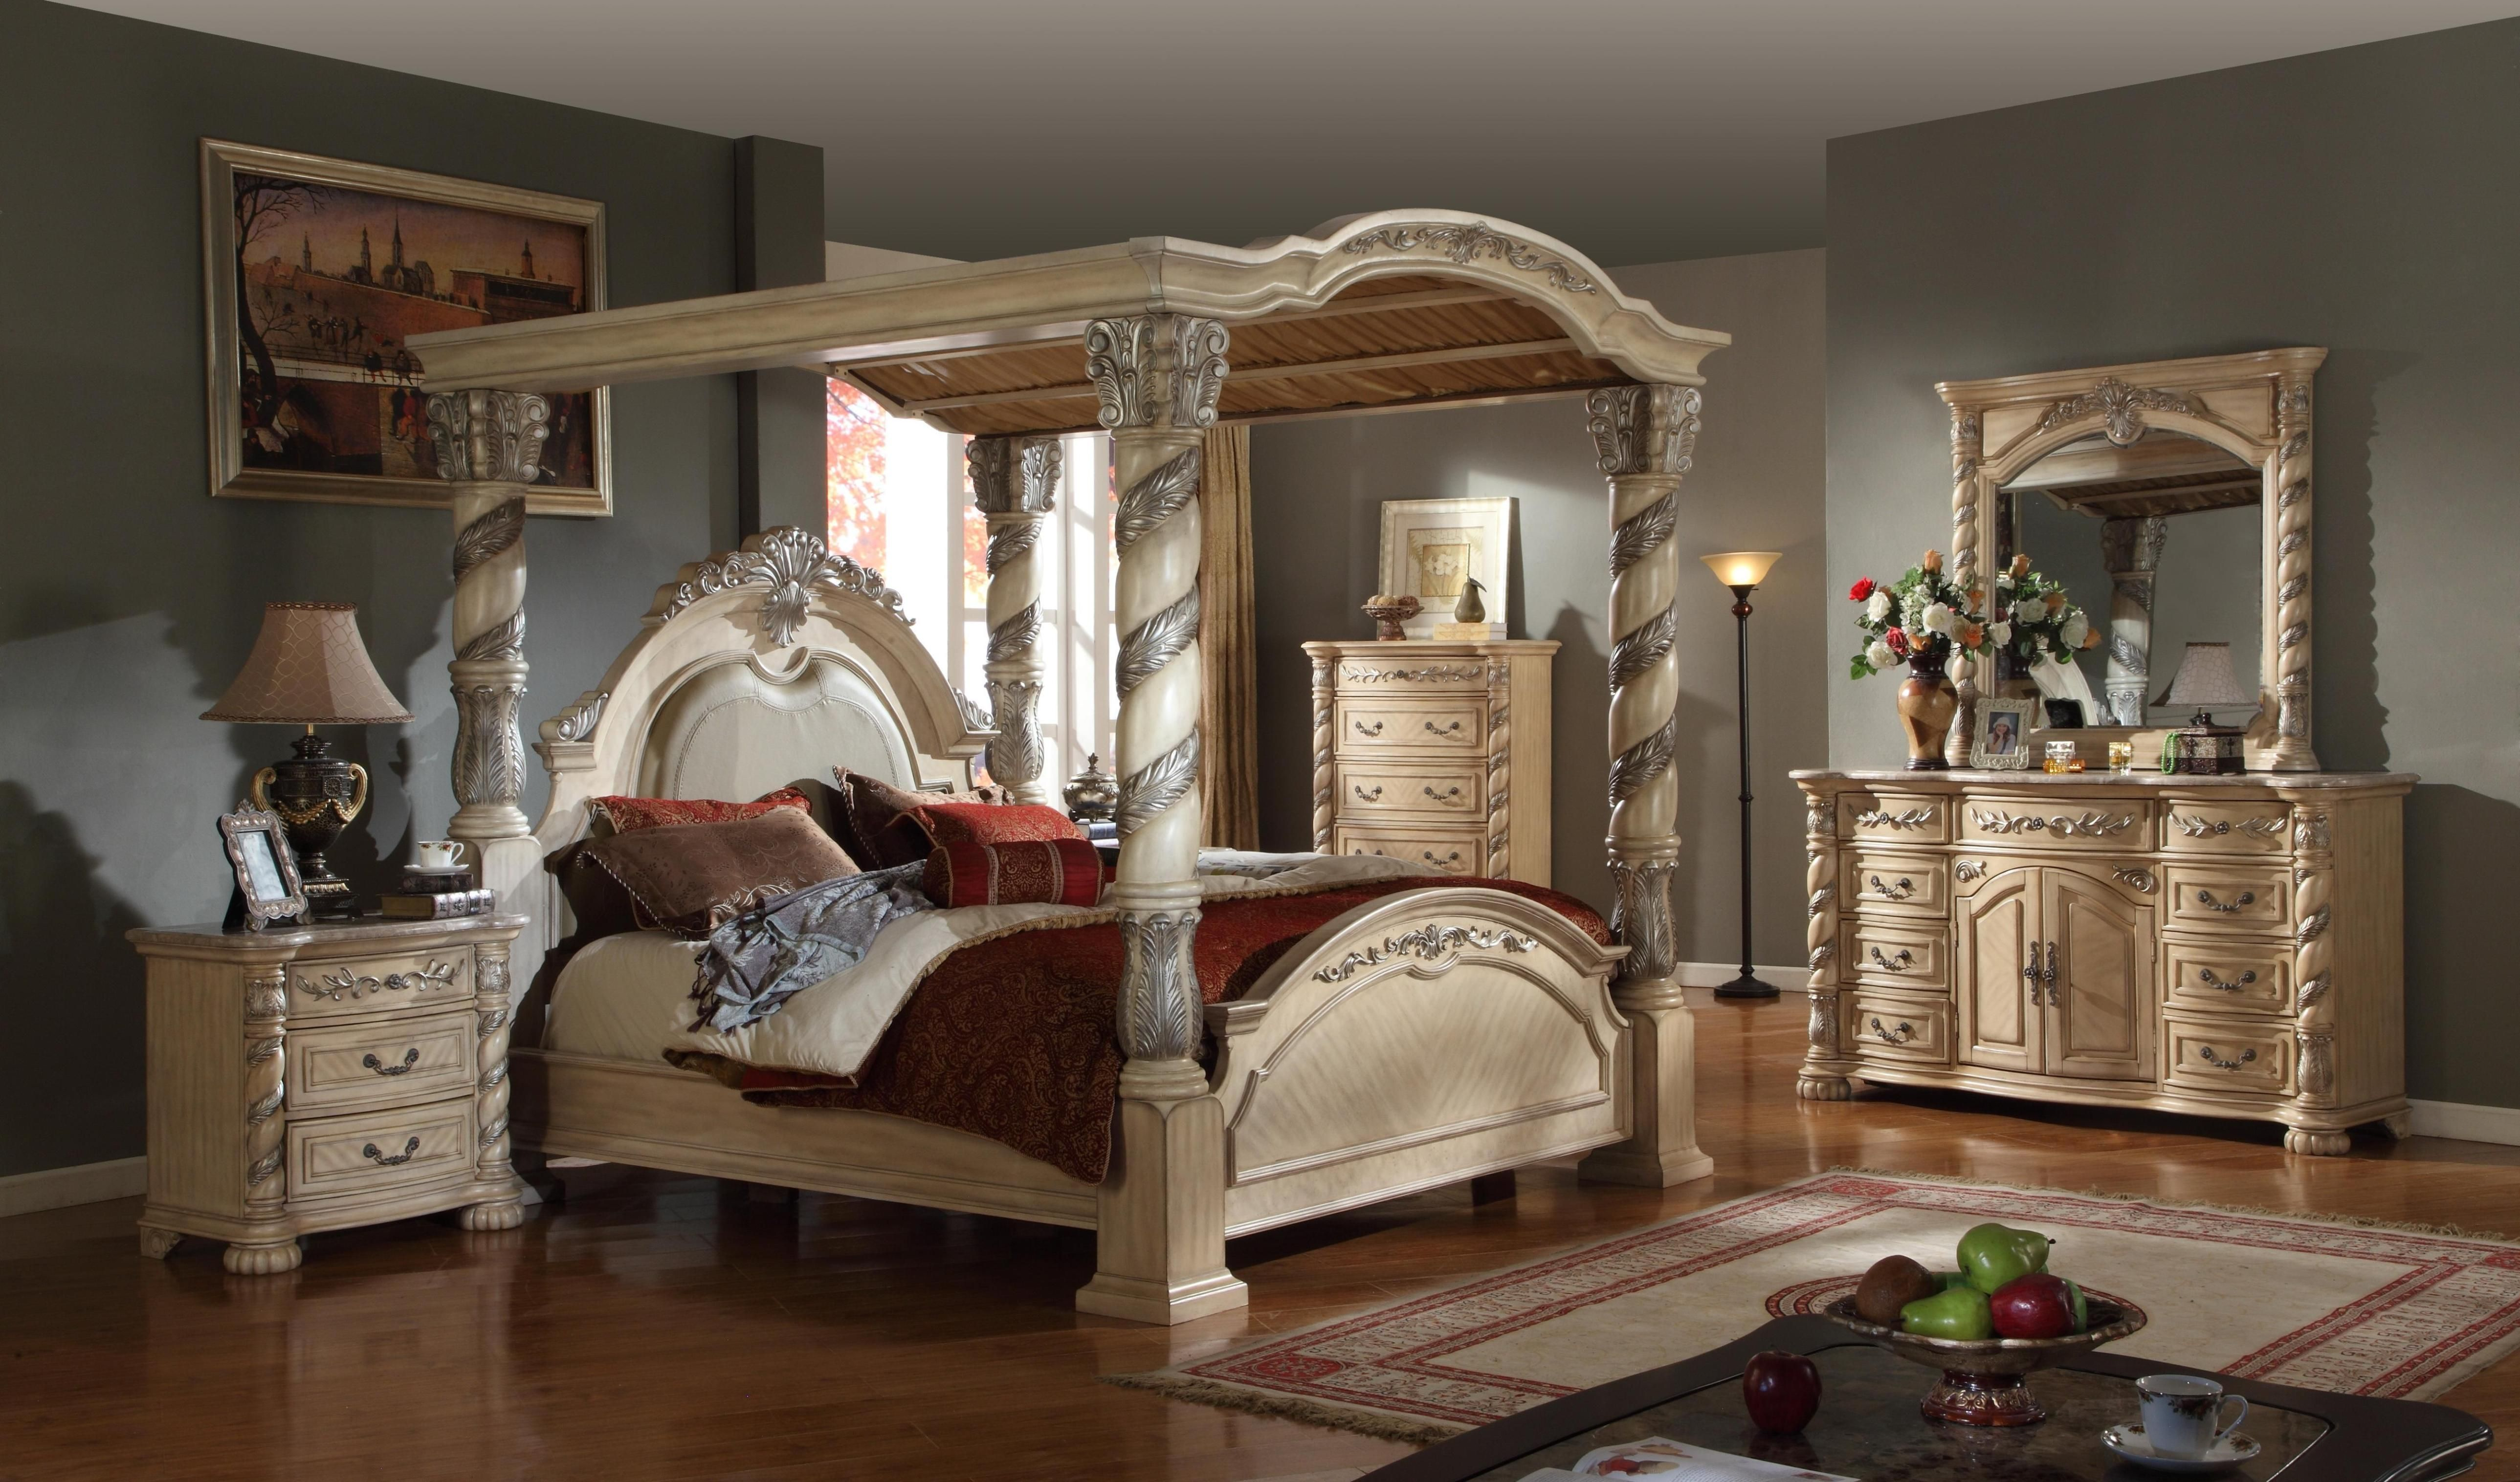 King Canopy Bedroom Set - Colleen\'s Classic Consignment, Las Vegas ...